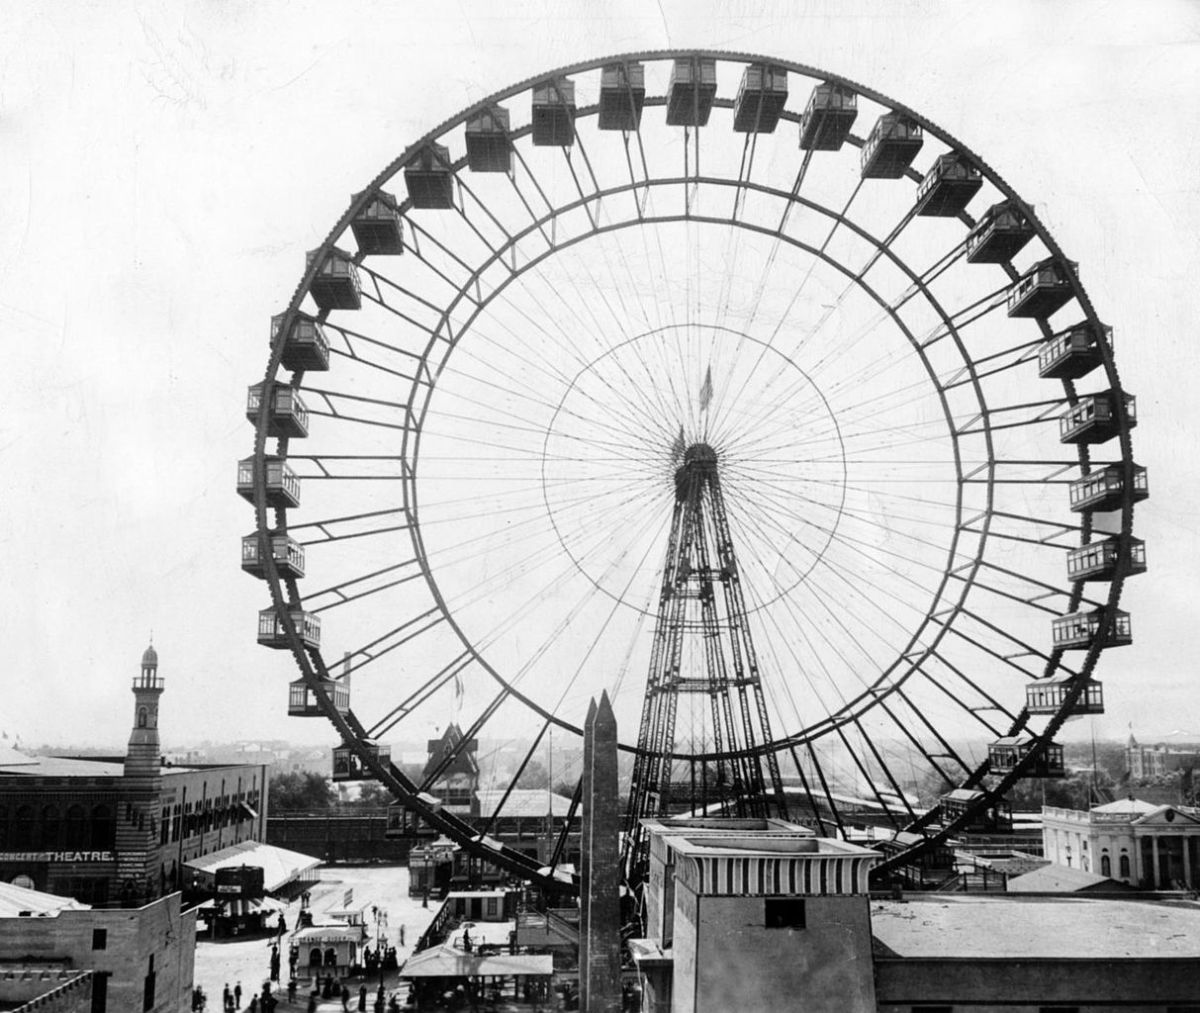 Nikola Tesla and the 1893 World's Fair in Chicago